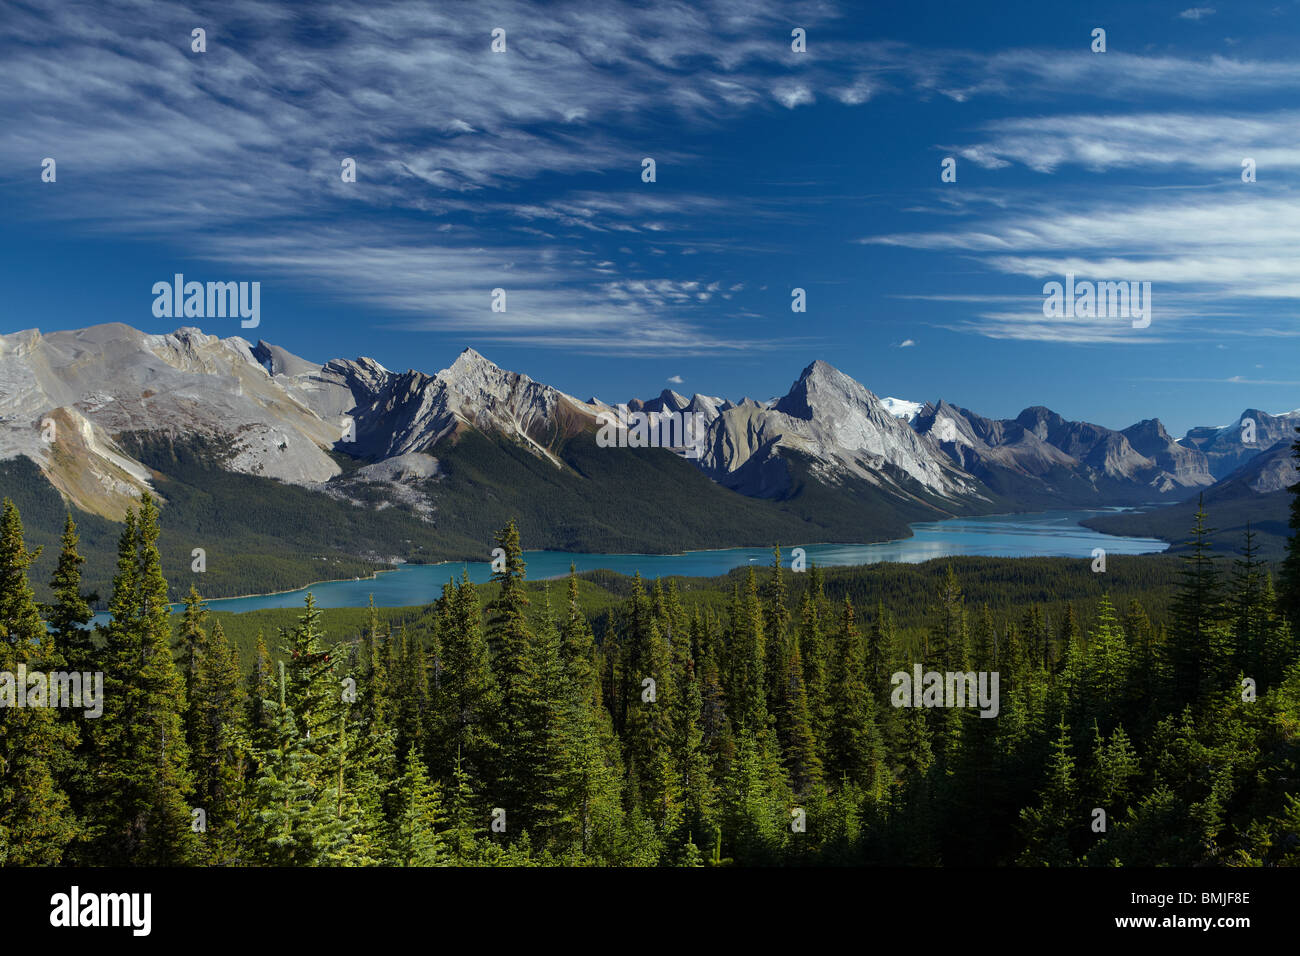 Maligne Lake from Bald Hills, Jasper National Park, Alberta, Canada - Stock Image